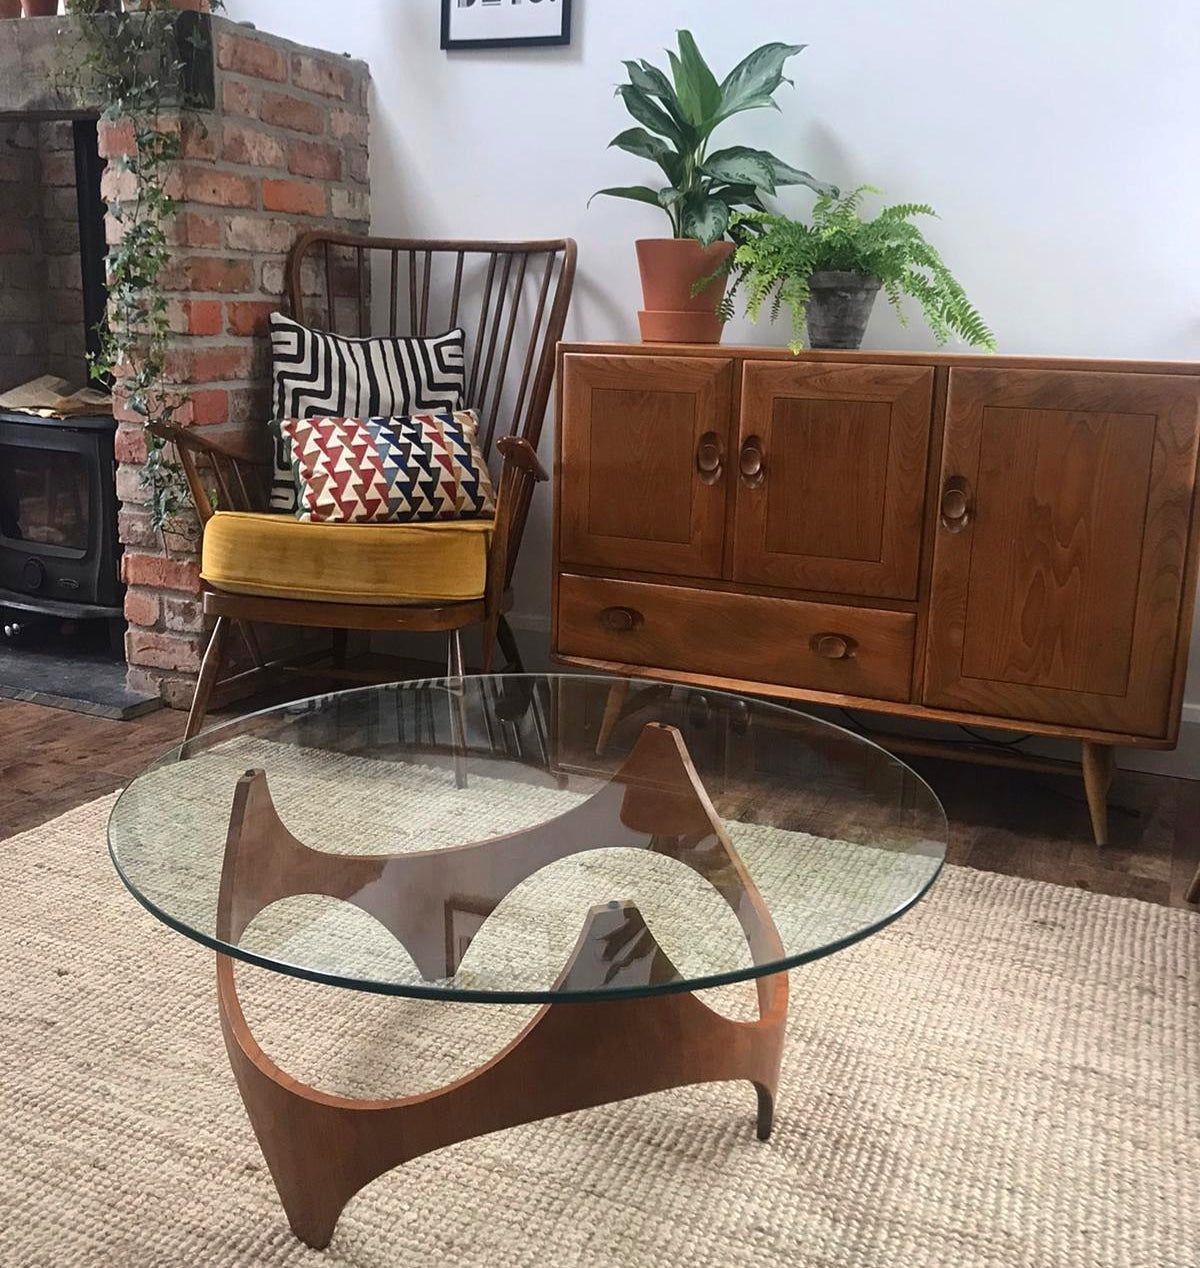 Iconic mid century Henry P glass table